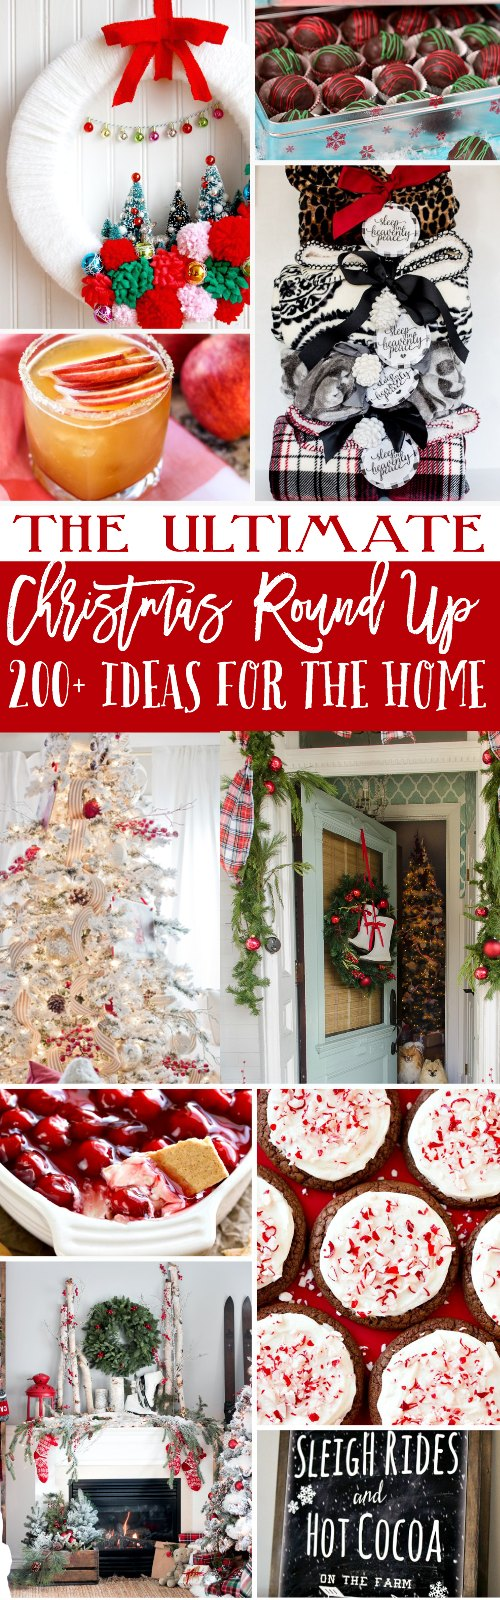 The Ultimate Christmas Round Up with 200 ideas for the home, gifts and things to bake.